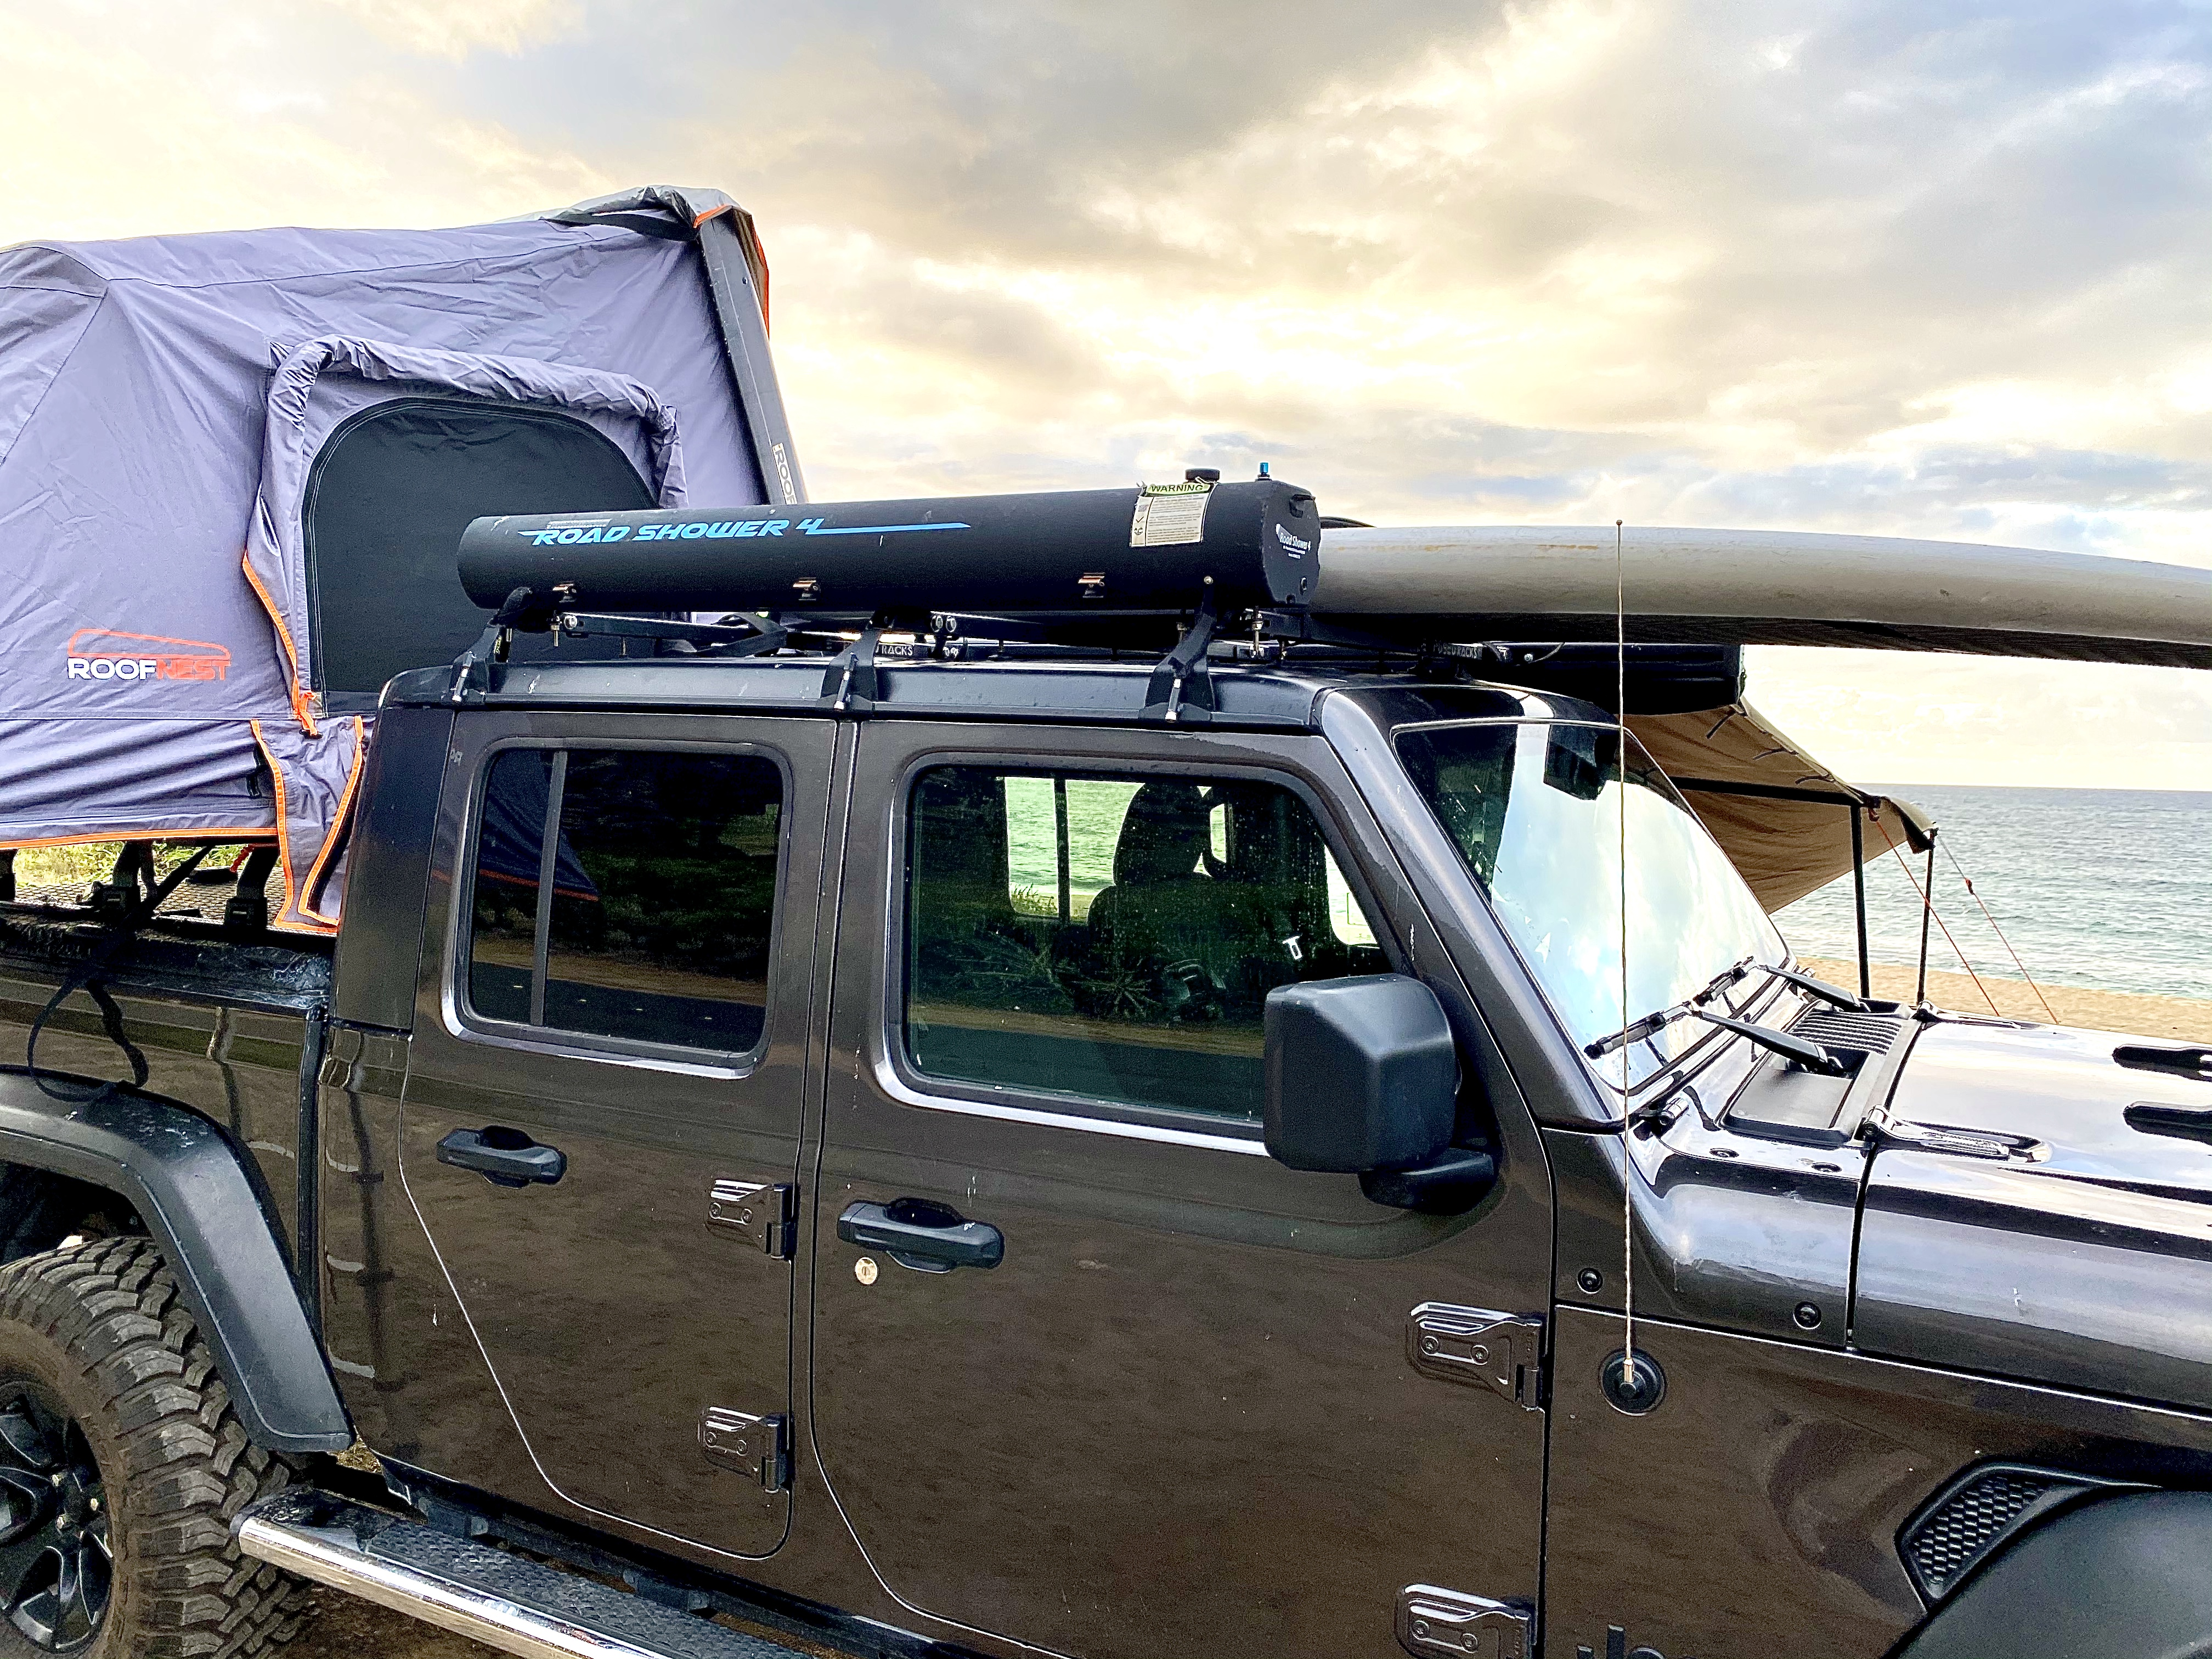 Yakima Road shower with 4 gallon water tank Along with roof rack and straps for your surfboard. Jeep Gladiator 2020